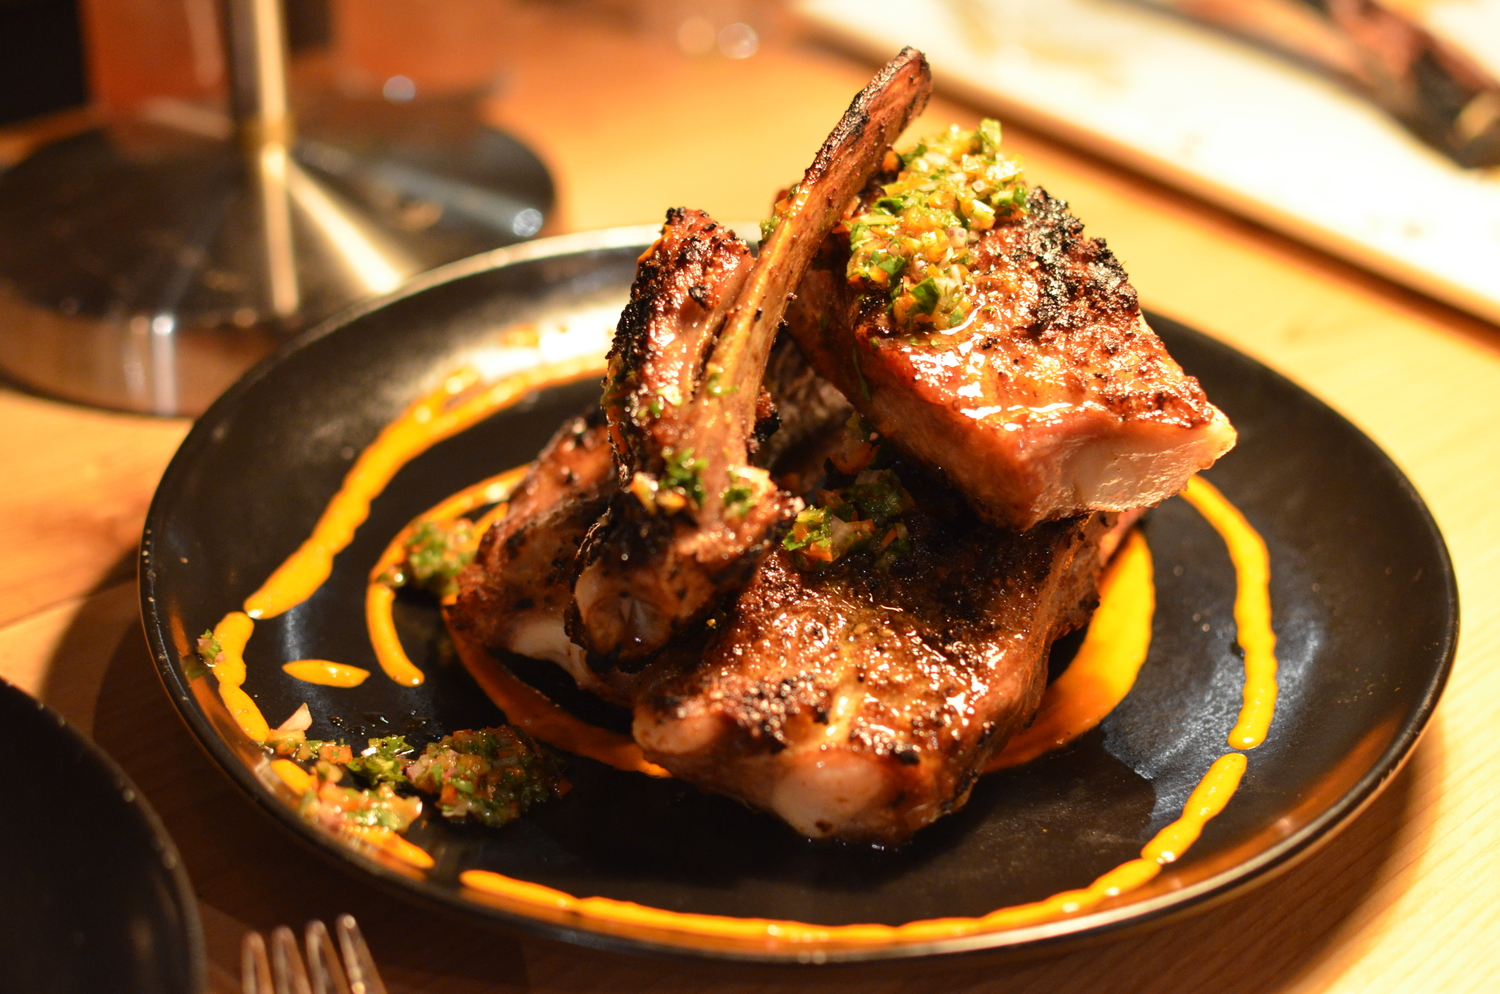 Kosher Restaurant. Miami\'s Best BBQ and Smokehouse serving delicious ...